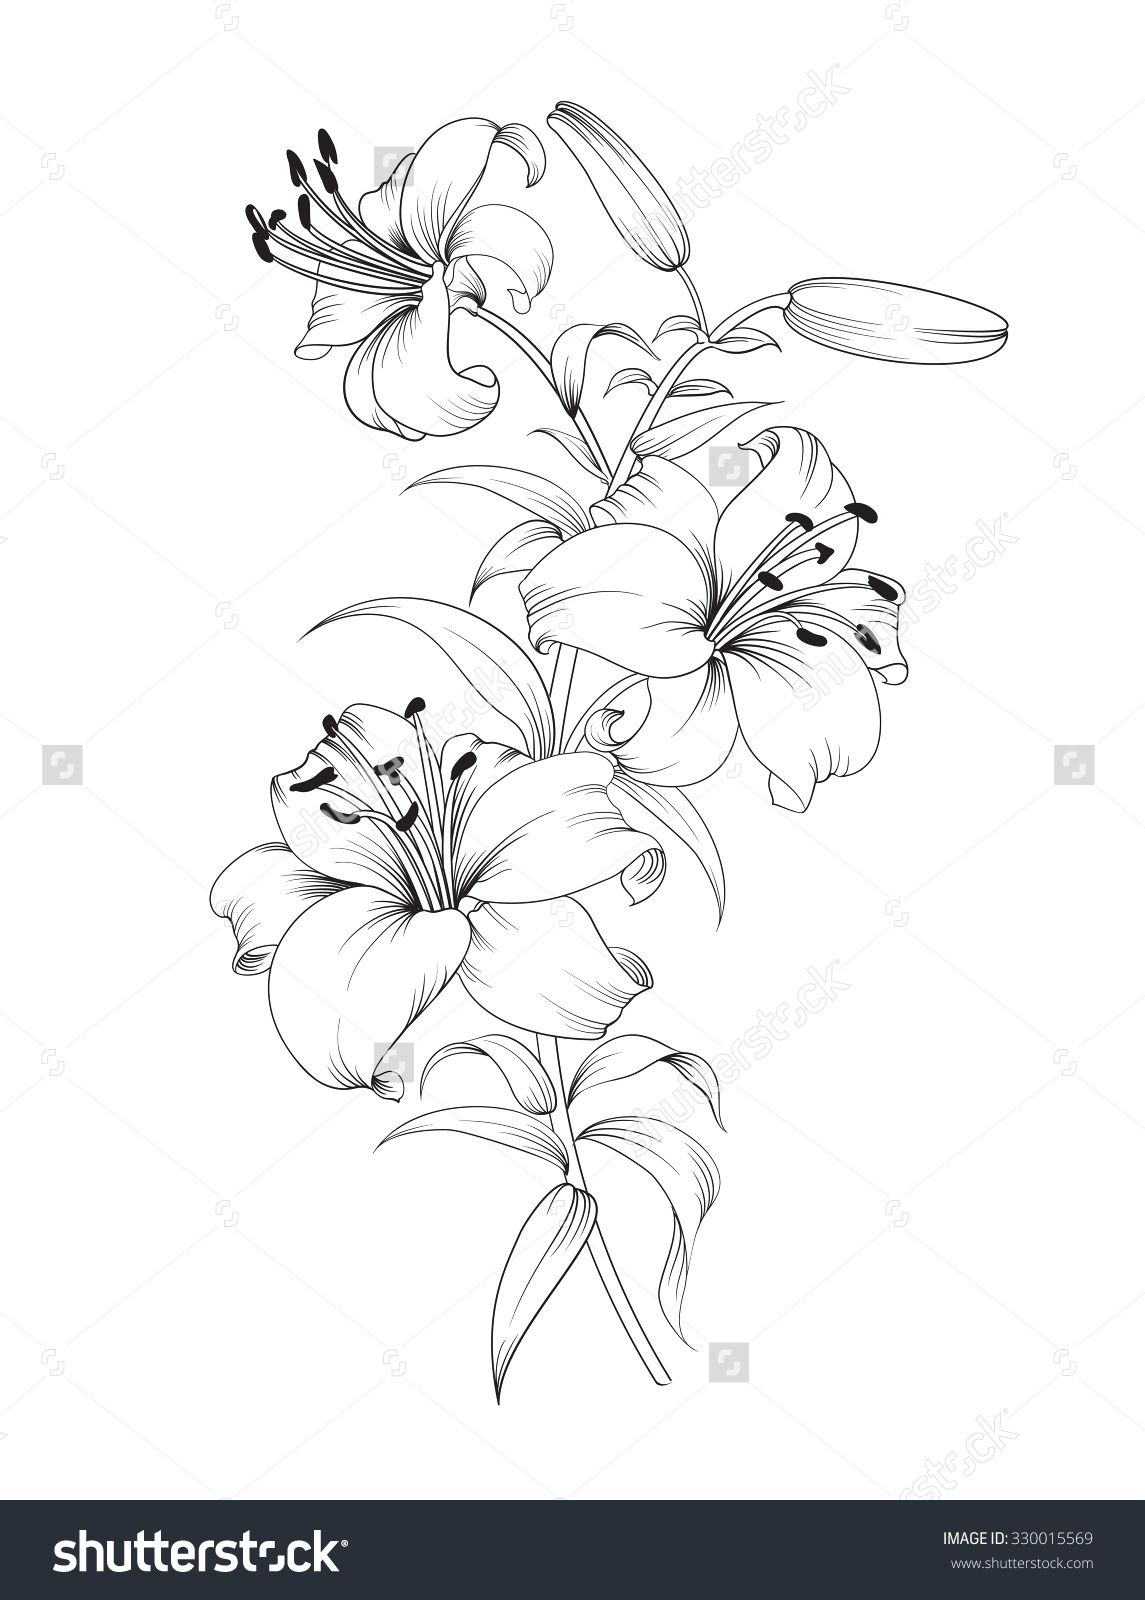 Group Of Lily Flowers Floral Background With Blooming Lilies